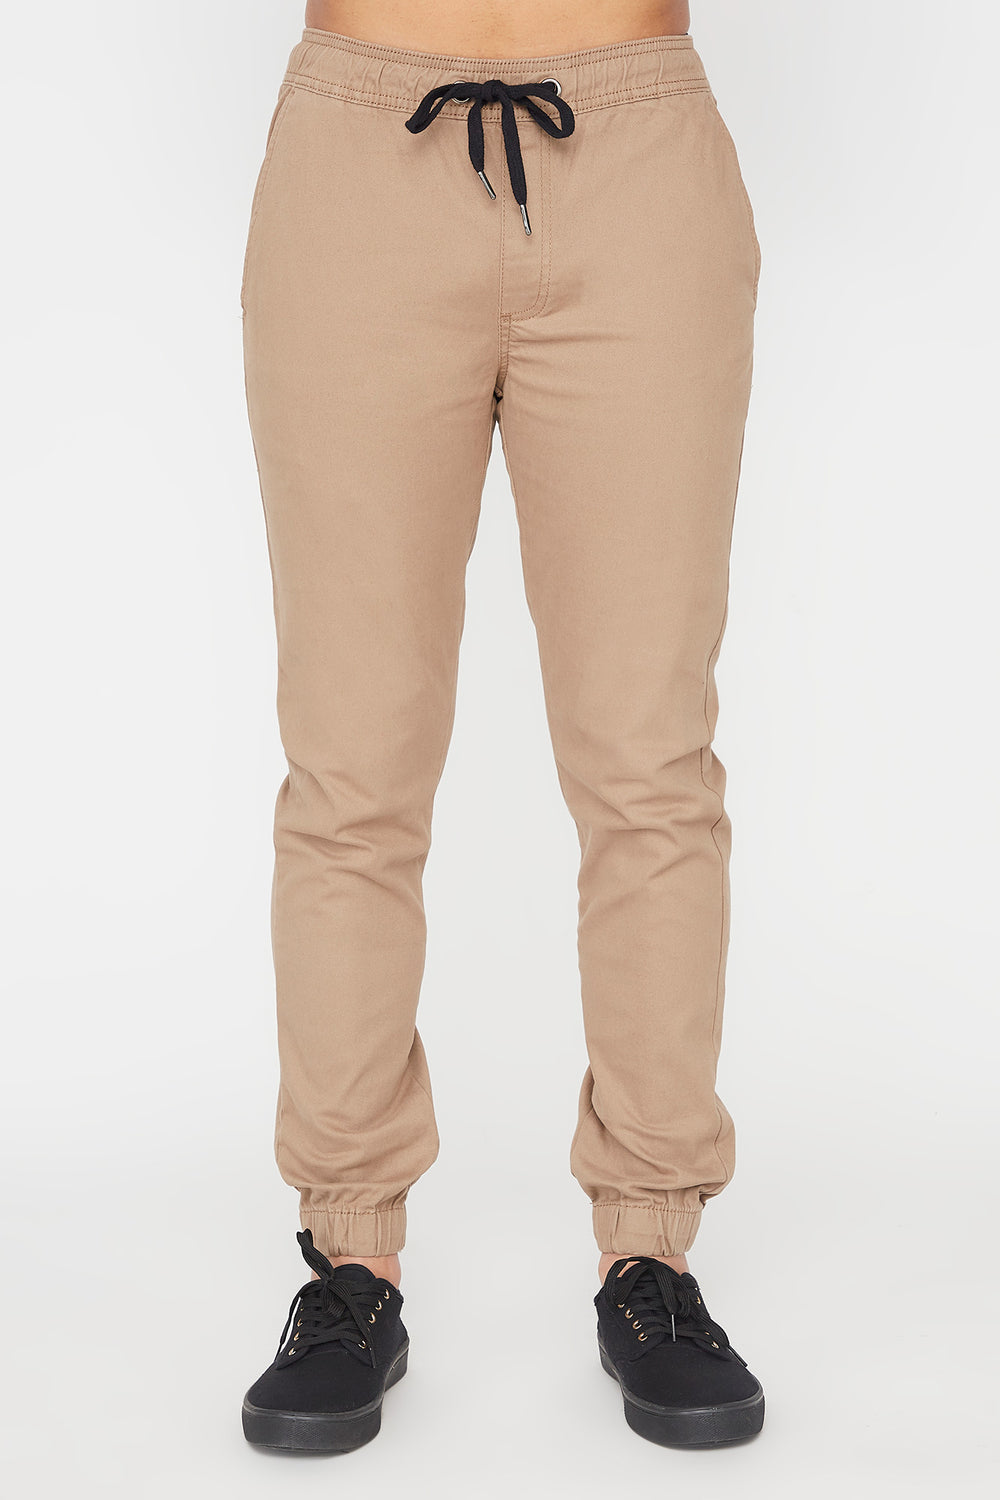 West49 Mens Solid Twill Basic Jogger Sand